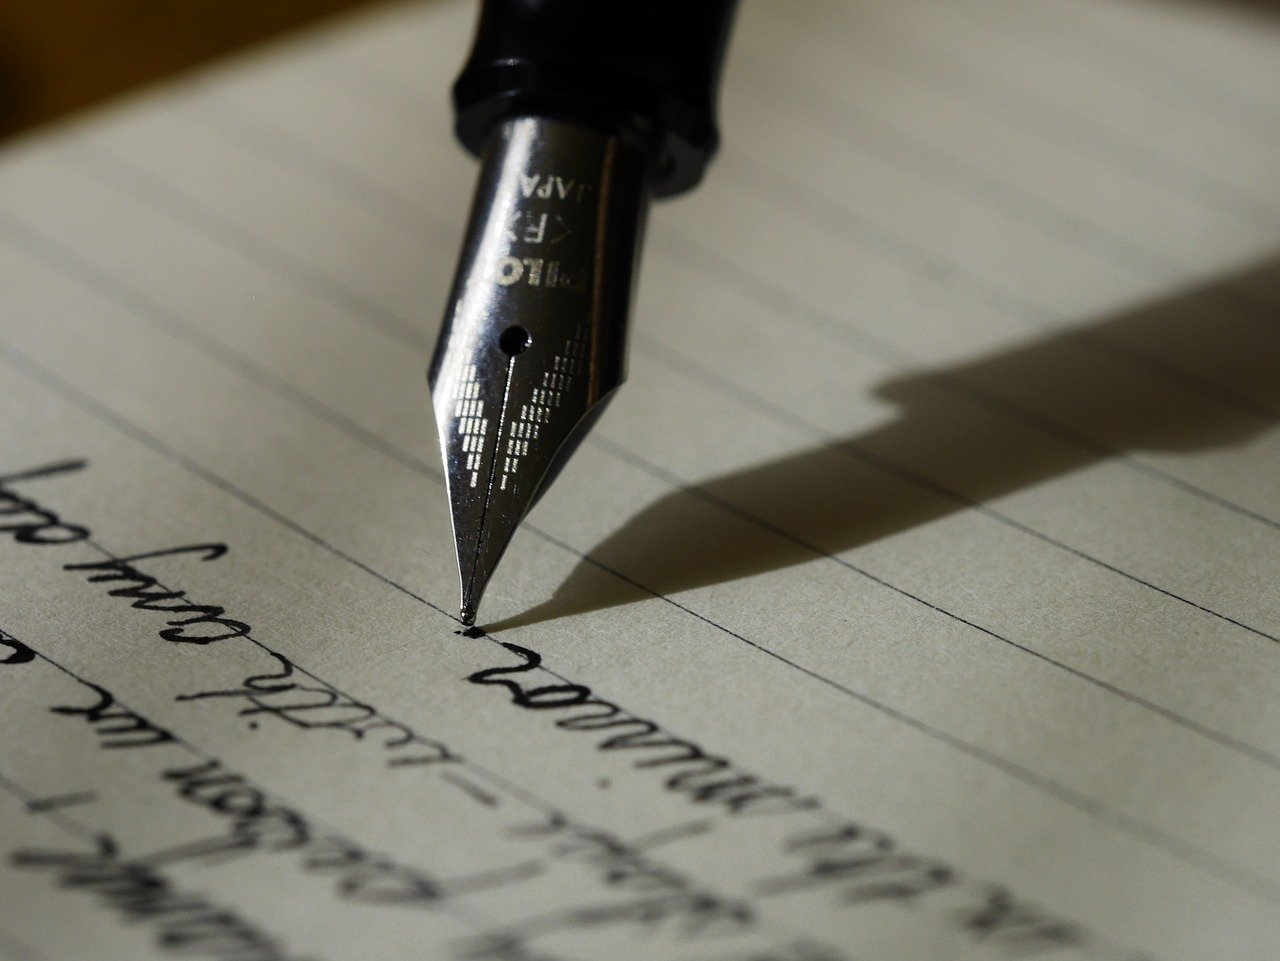 handwriting examination to determine authorship of malicious letters